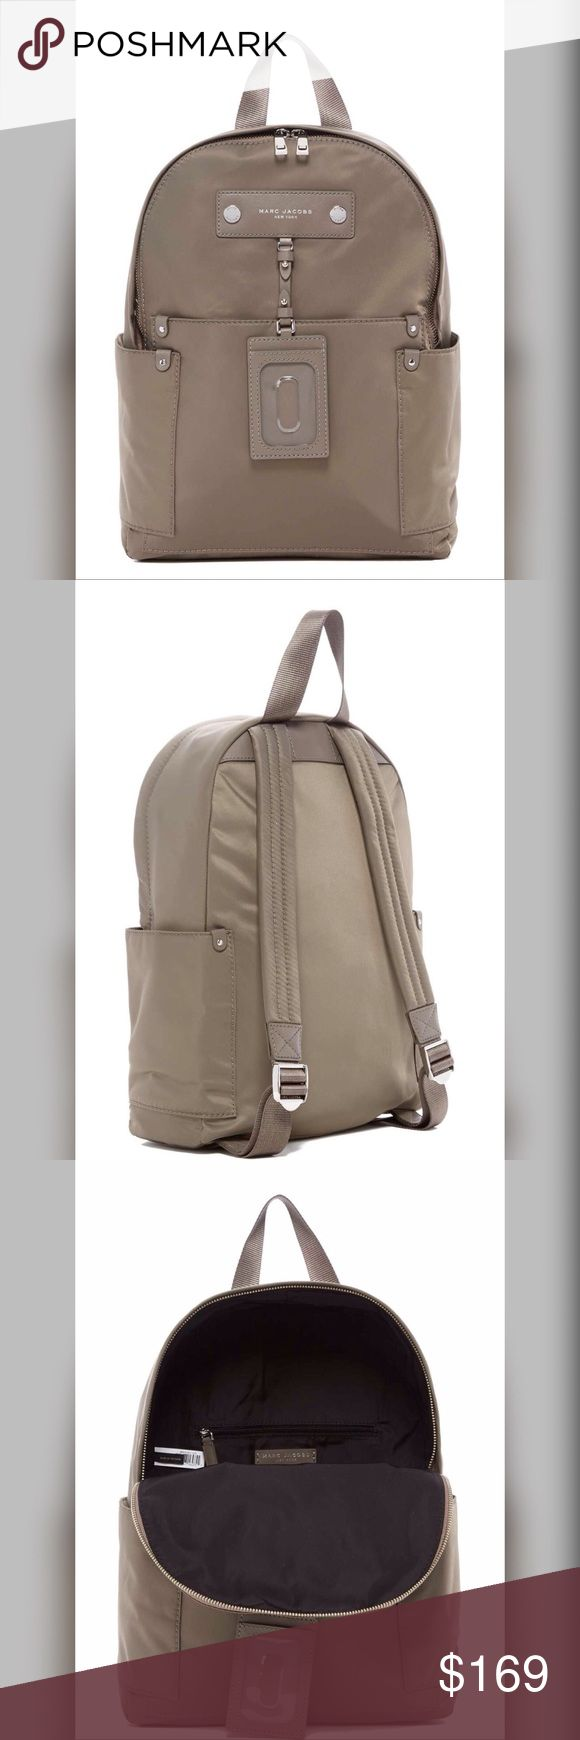 """Marc Jacobs Preppy Nylon Backpack Brand New! Marc Jacobs Preppy Nylon Backpack in Quartz Grey color.  Sleek, streamlined designed with comfy channel-stitched shoulder straps and a dangling luggage tag. Refined logo hardware adds understated branding. - Single top handle - Adjustable dual shoulder straps - Zip closure - Exterior features side slip pockets - Interior features zip pocket and slip pockets - Approx 13.5""""H x 15""""W x 4""""D Marc Jacobs Bags Backpacks"""